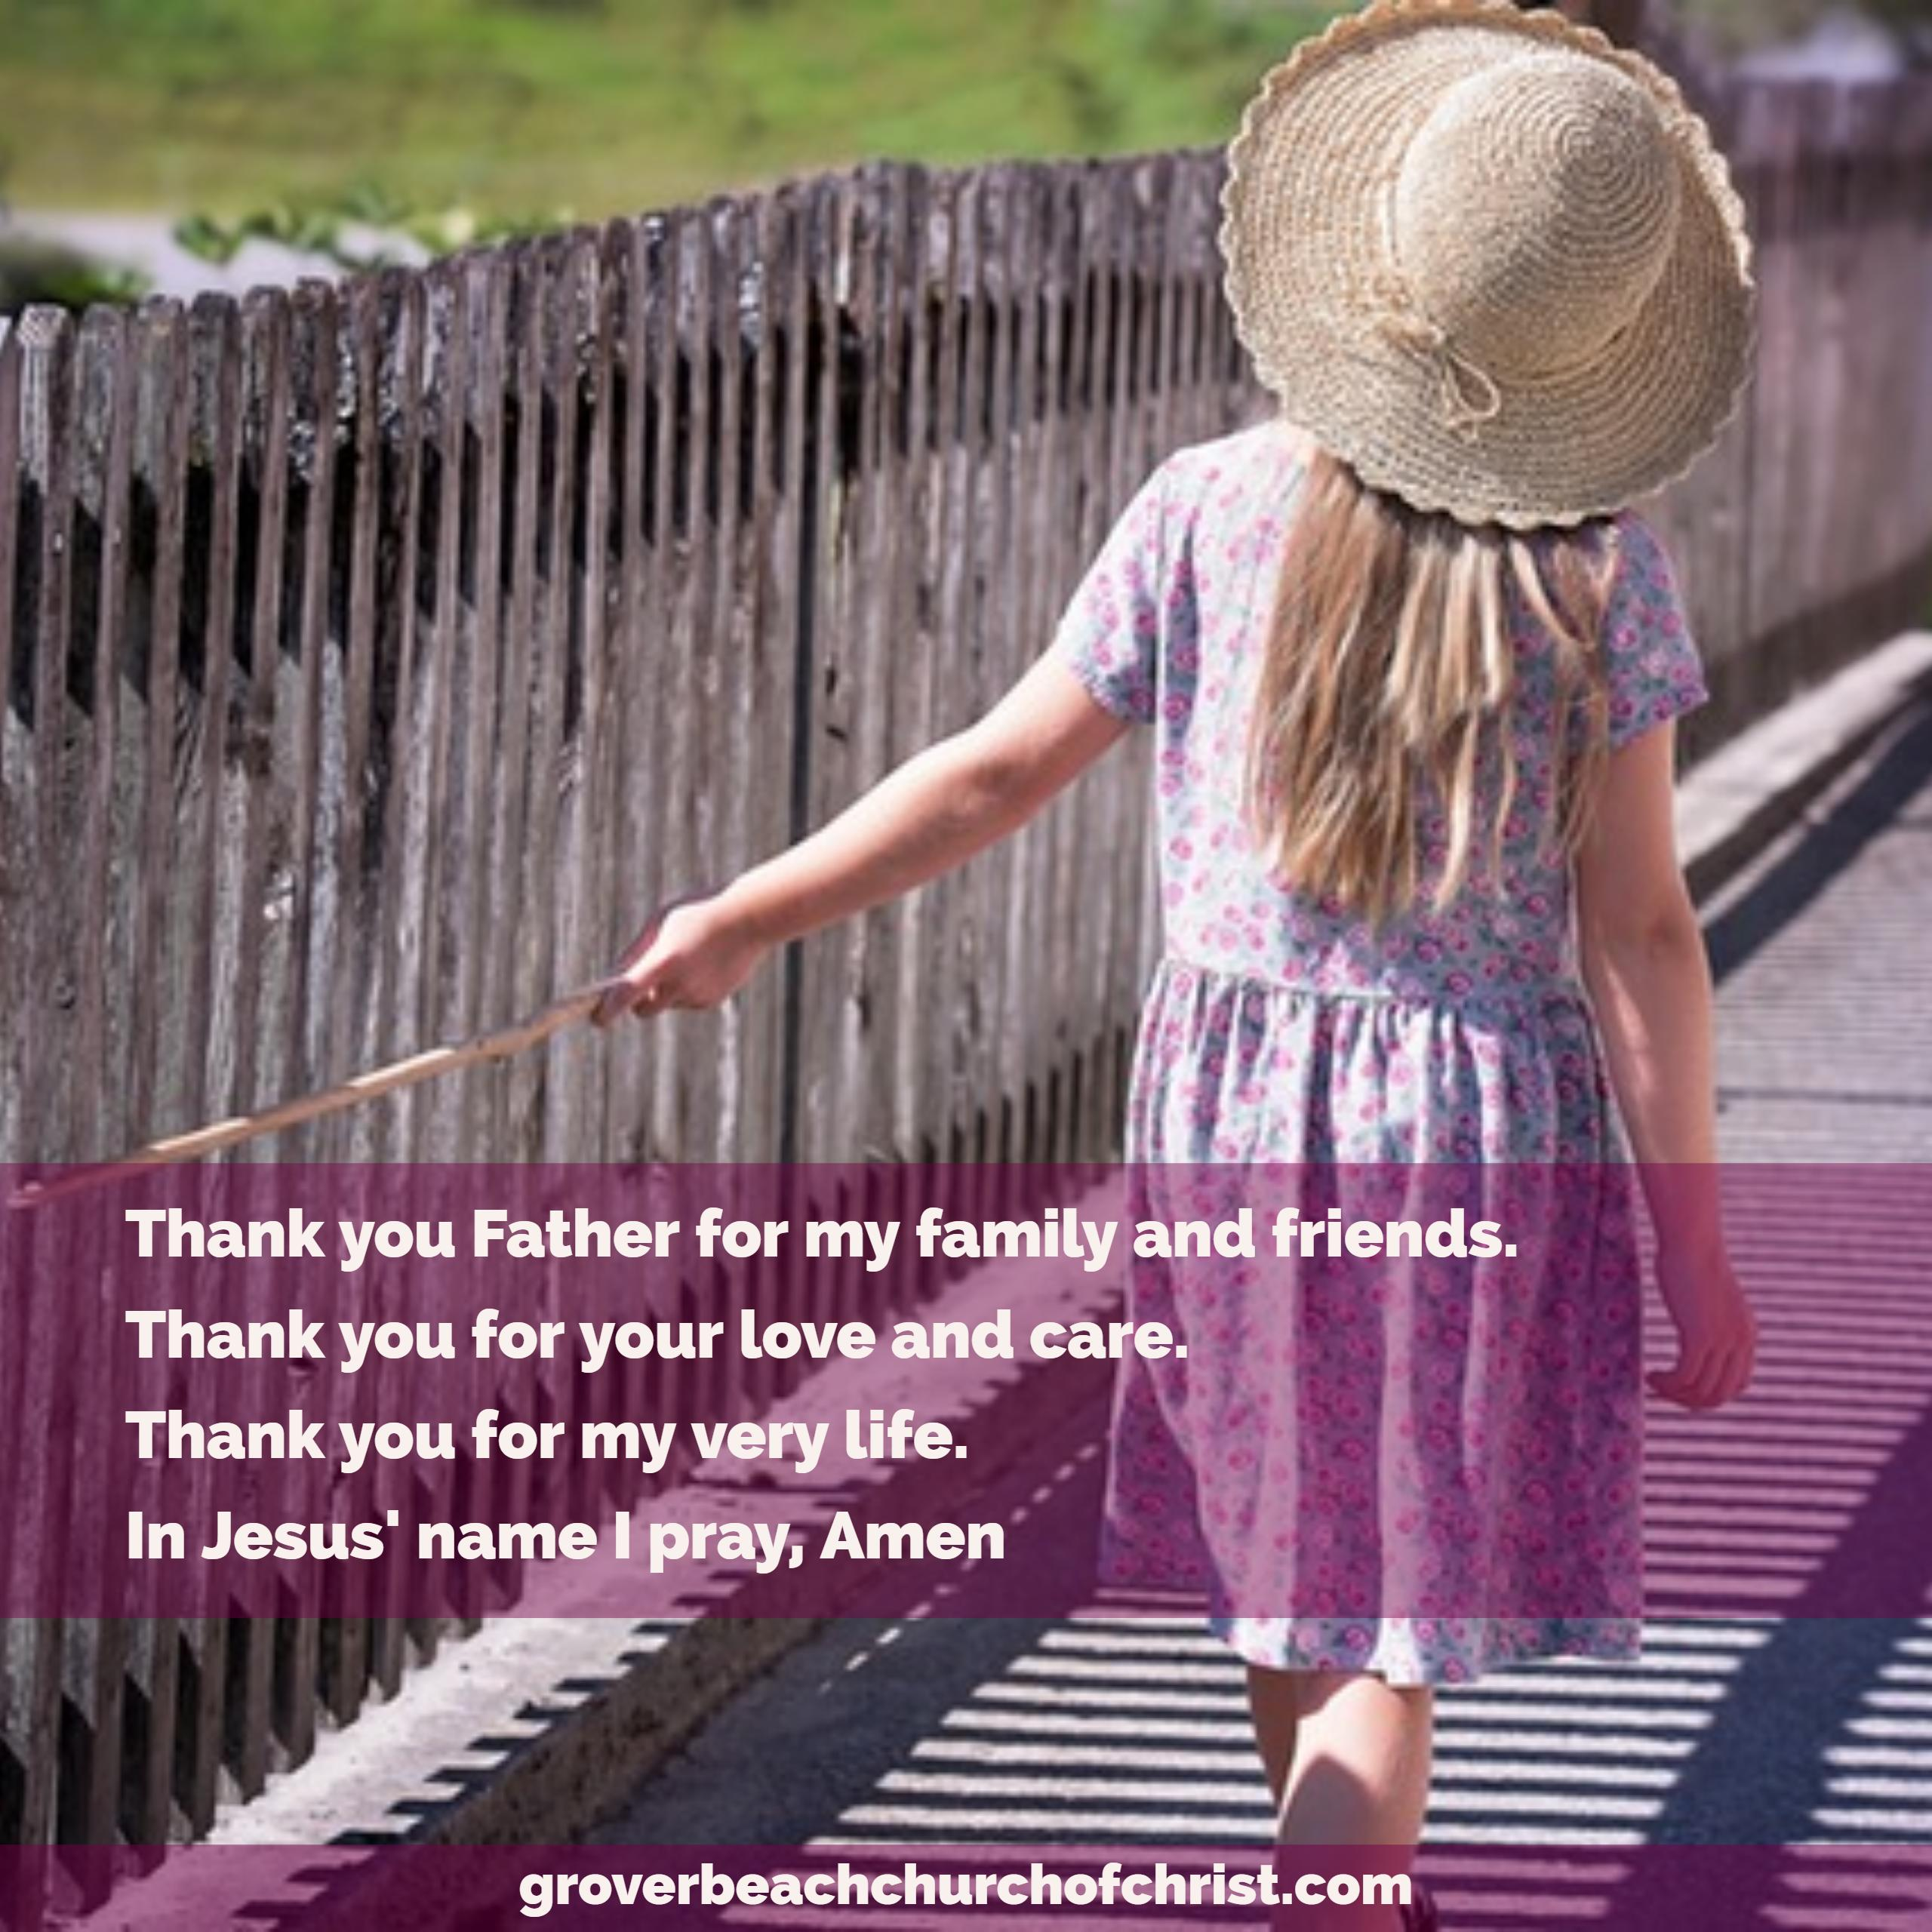 thank-you-father-for-family